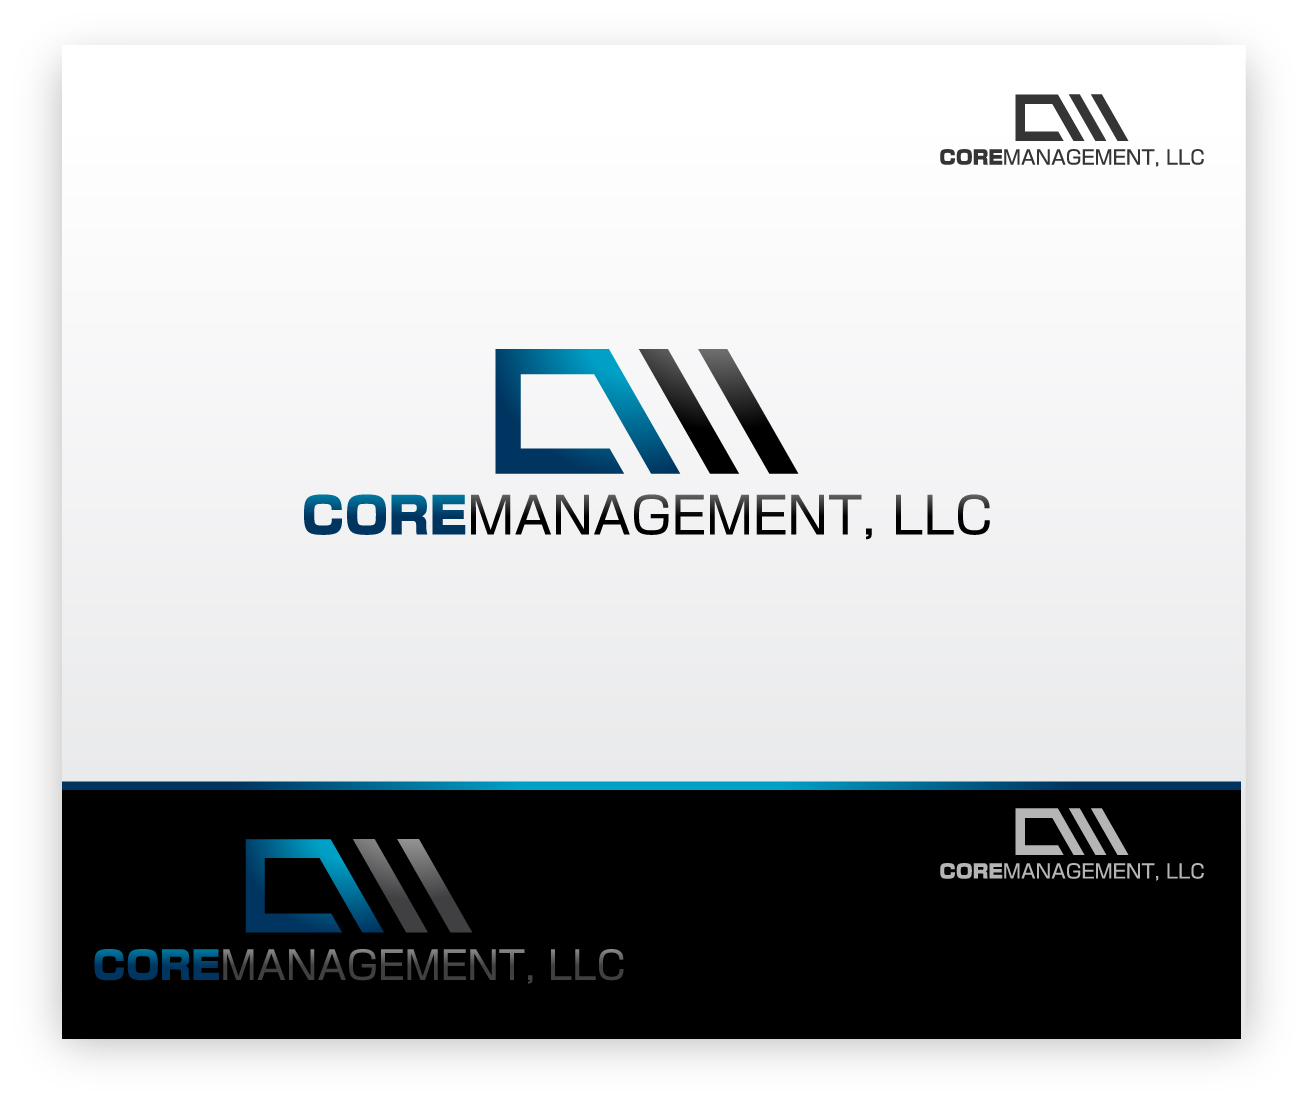 Logo Design by zoiDesign - Entry No. 6 in the Logo Design Contest Creative Logo Design for CORE Management, LLC.